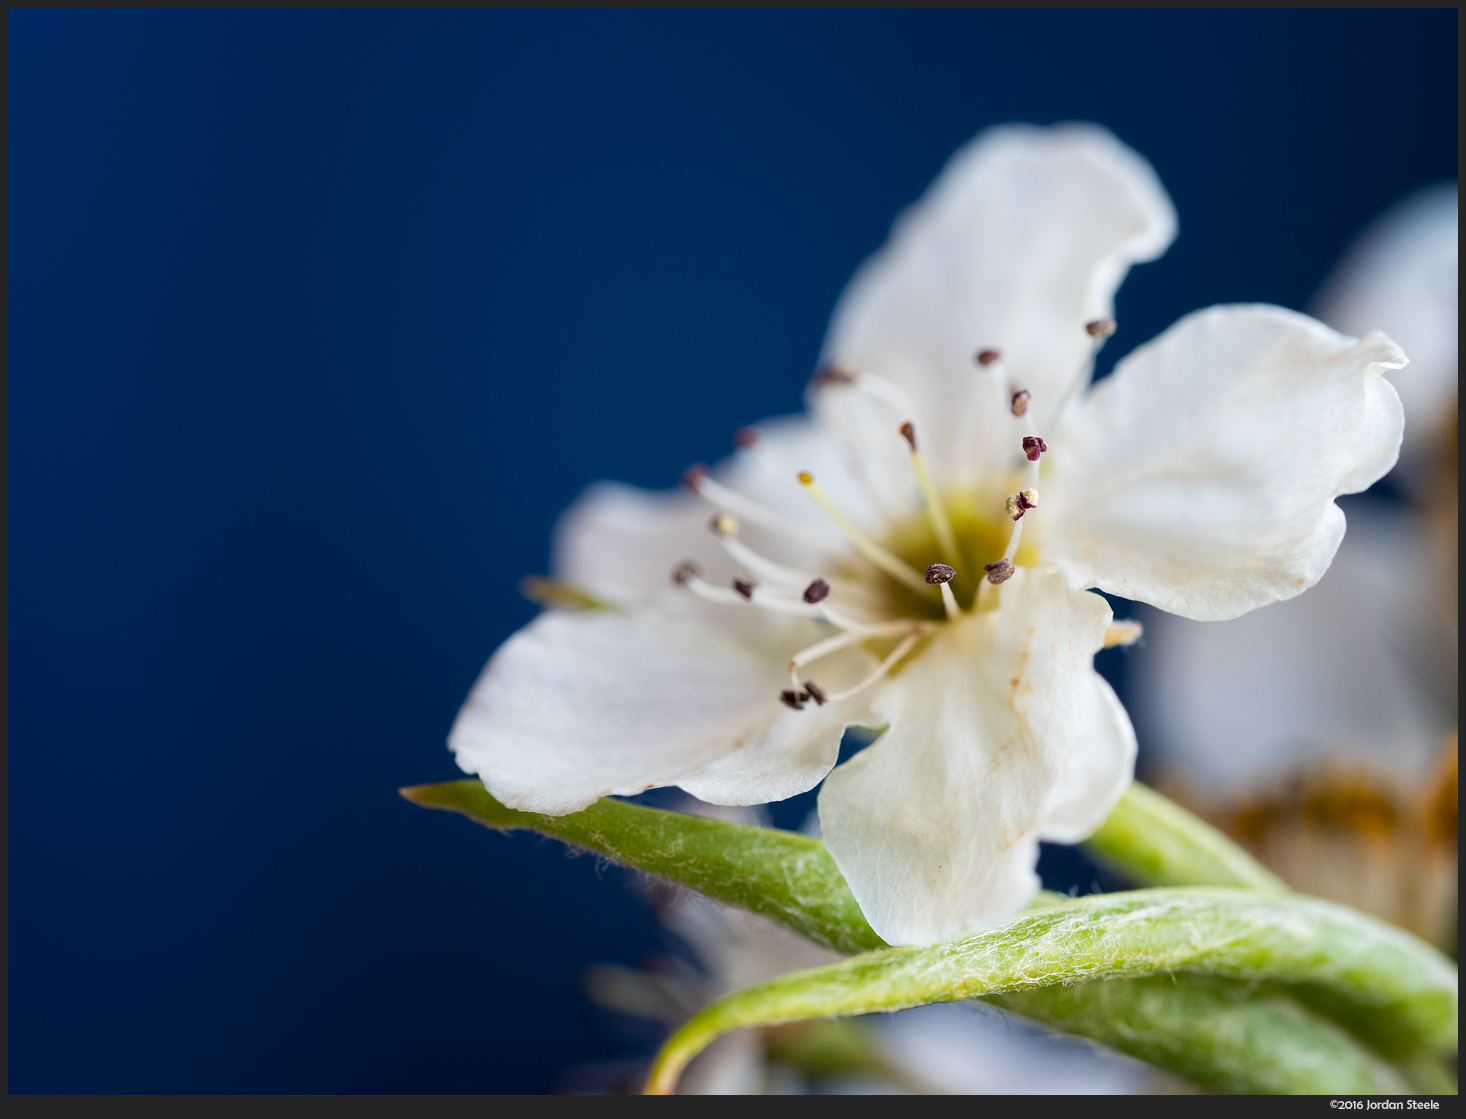 This photo of a blossom was taken at f/4, an optimal aperture for sharpness, but the final image has very shallow depth of field.